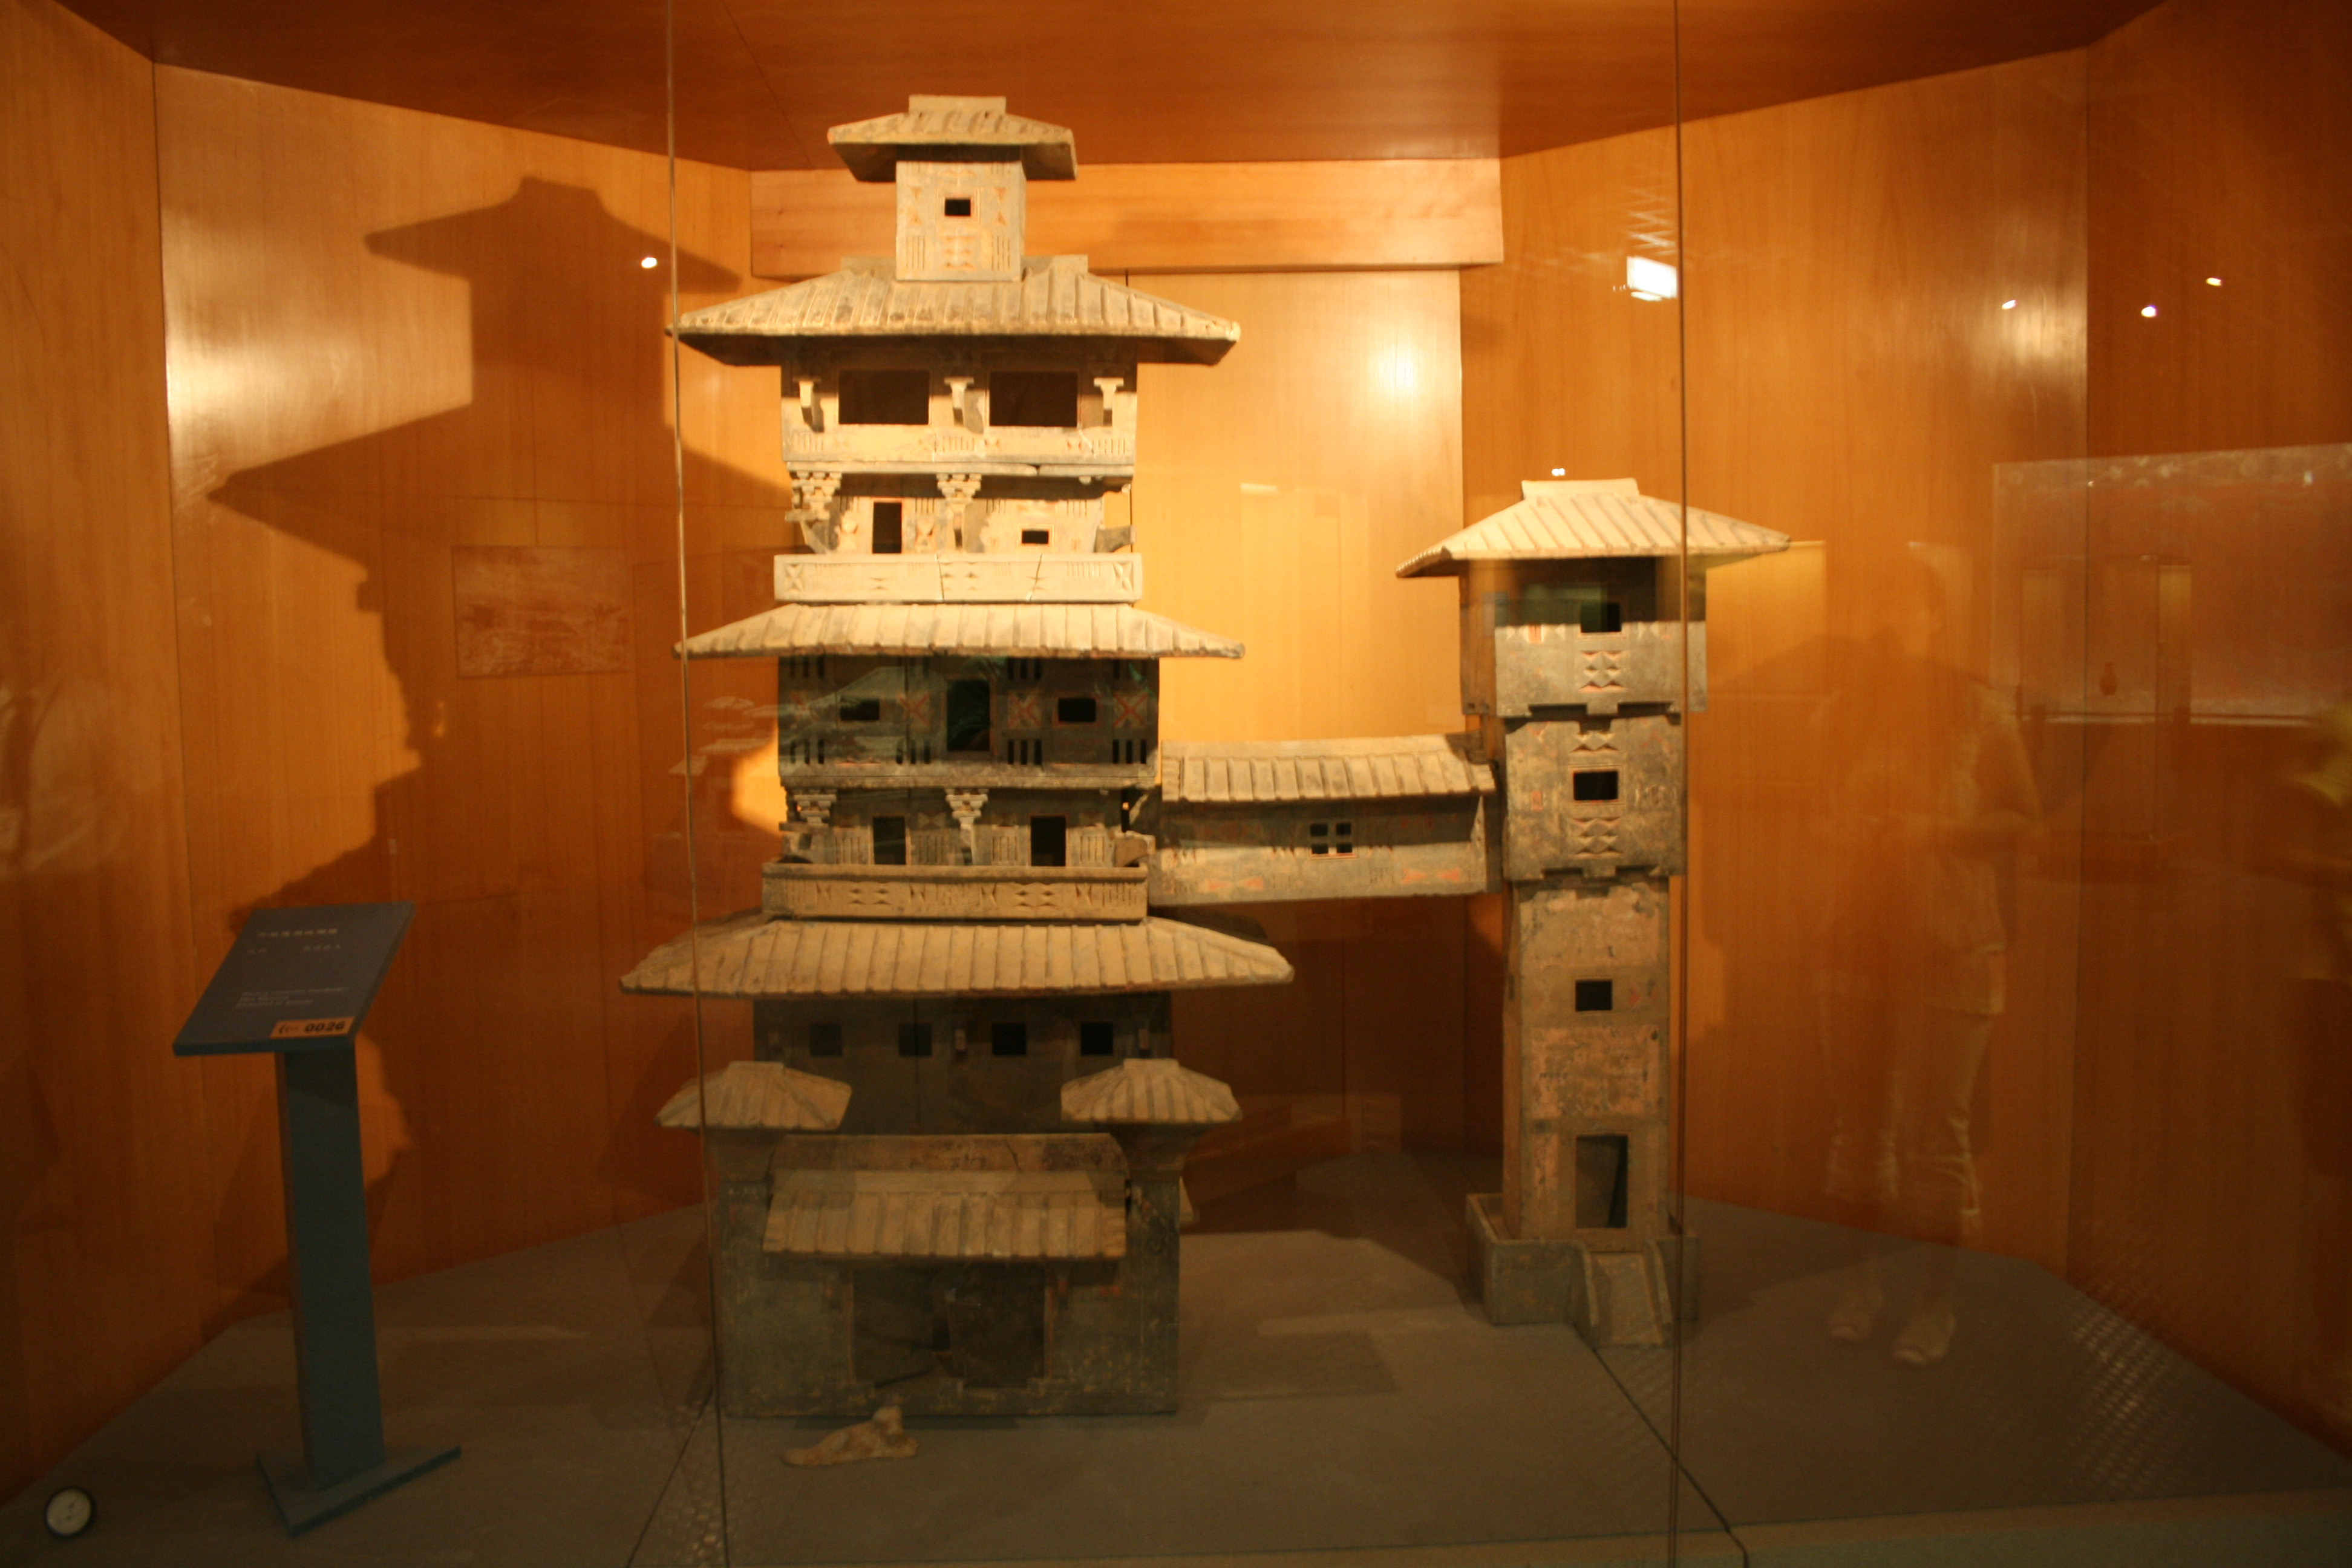 A Han Dynasty (202 BC 220 AD) Chinese miniature model of two residential towers joined by a bridge